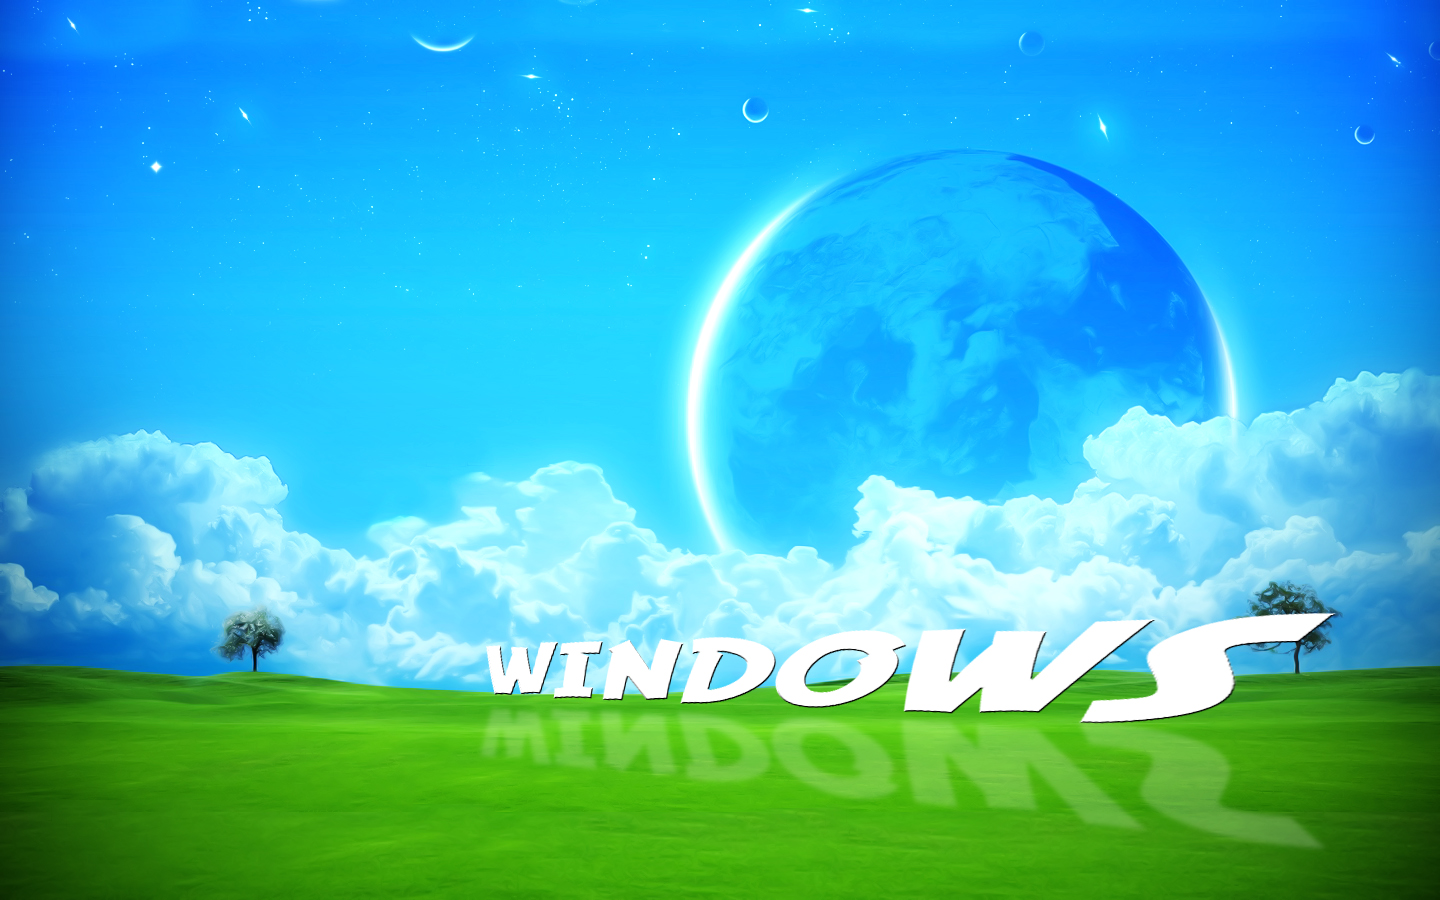 Animated Desktop Themes Windows 7